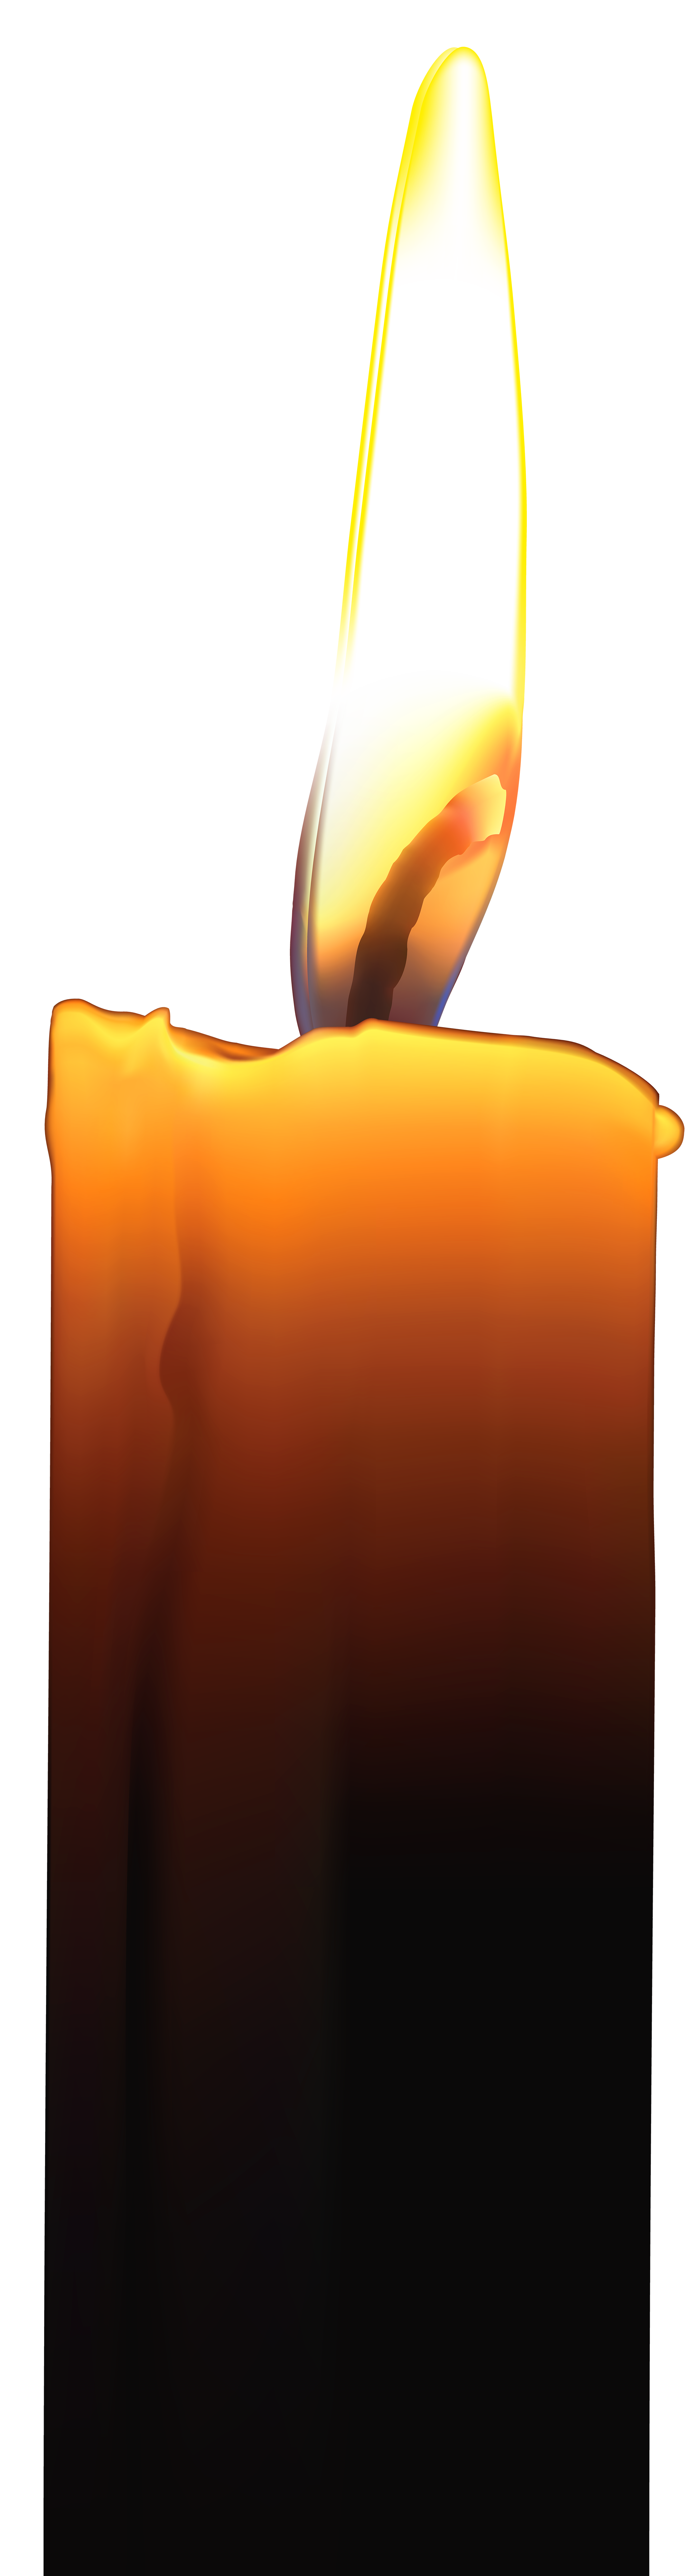 Memorial candles png. Candle clip art image